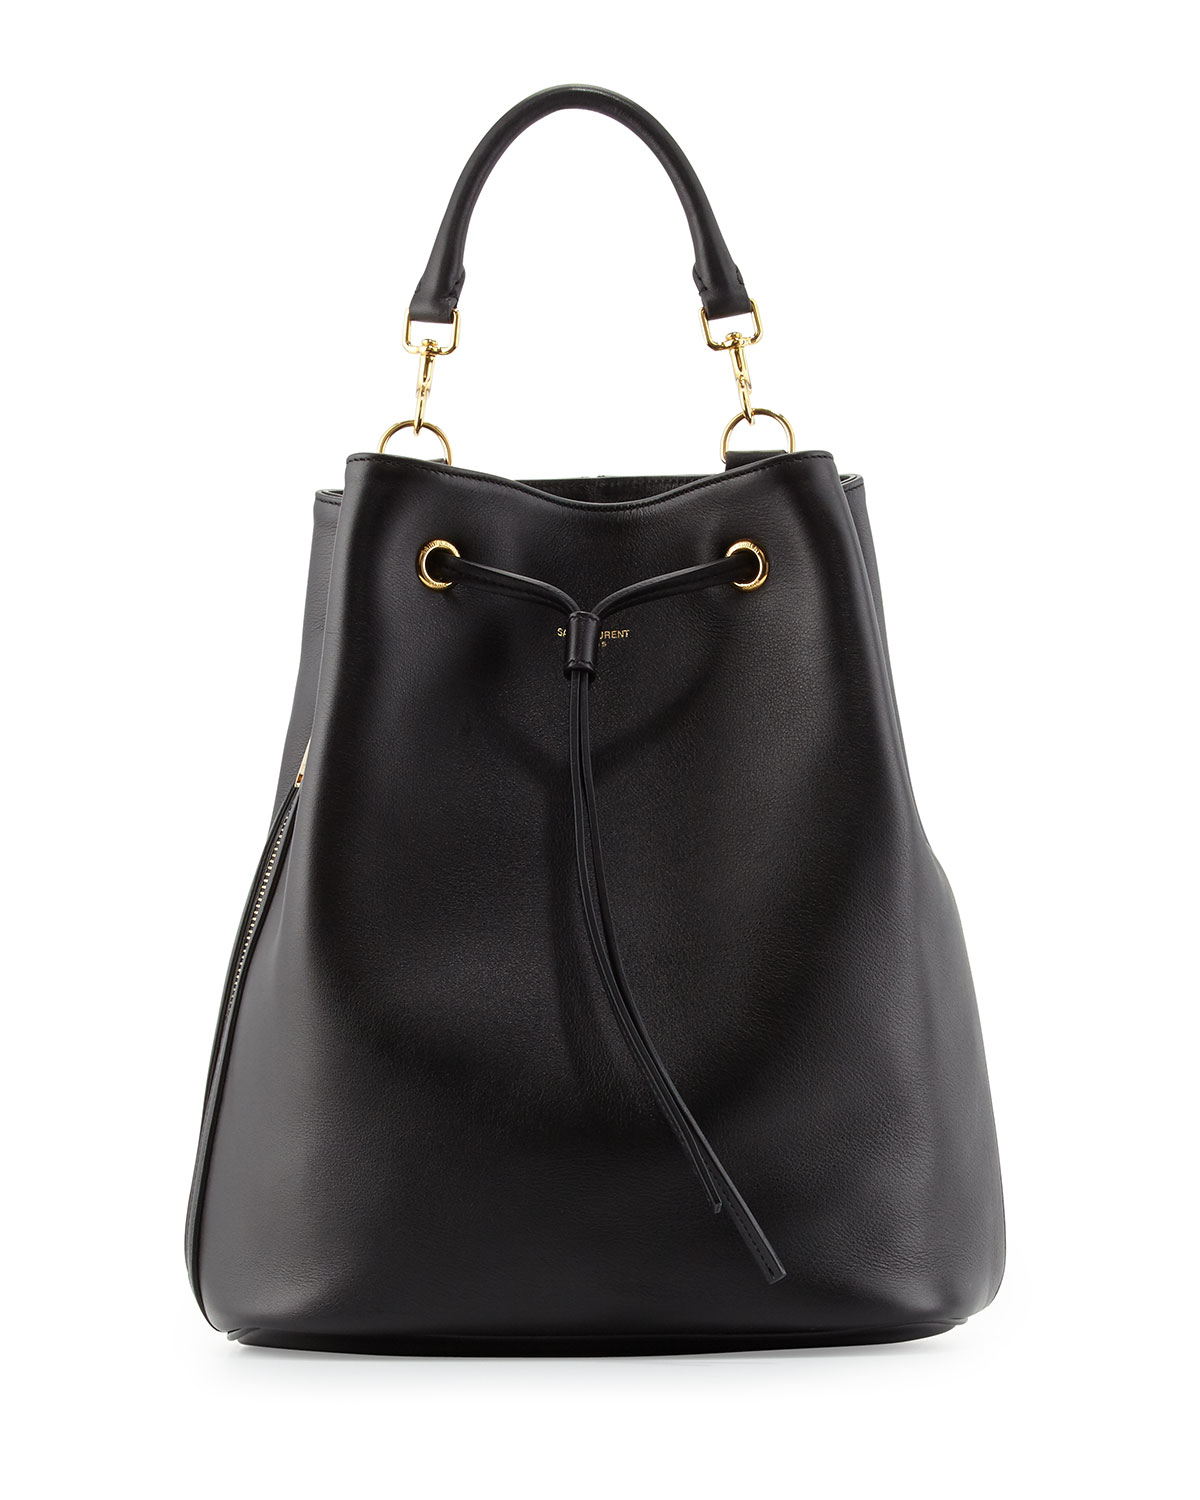 ysl accessories online - Saint laurent Leather Medium Drawstring Backpack in Black | Lyst